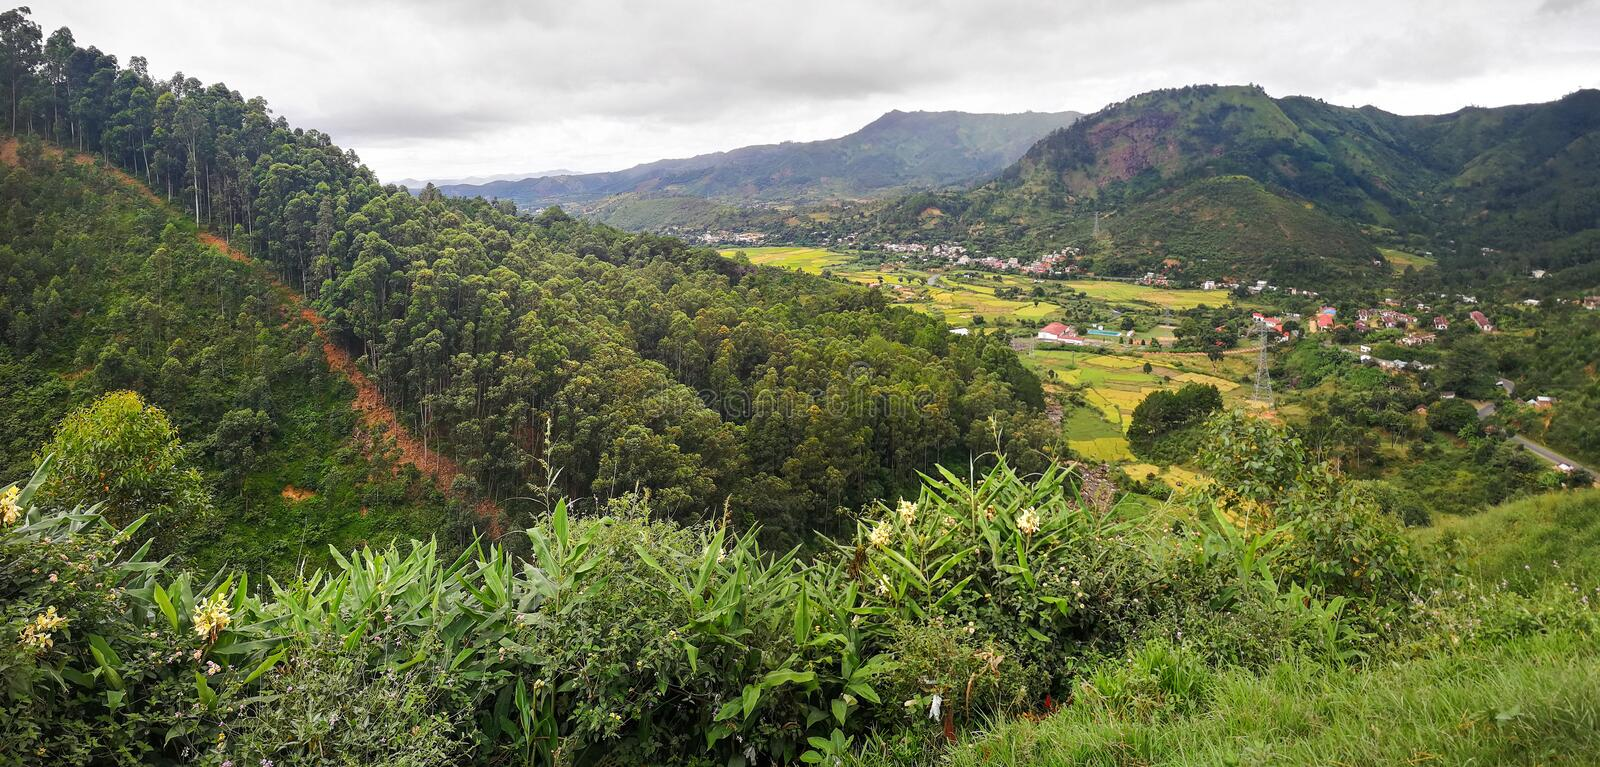 Typical Madagascar landscape at Mandraka region. Hills covered with green foliage, small villages in distance, on. Overcast day royalty free stock photography